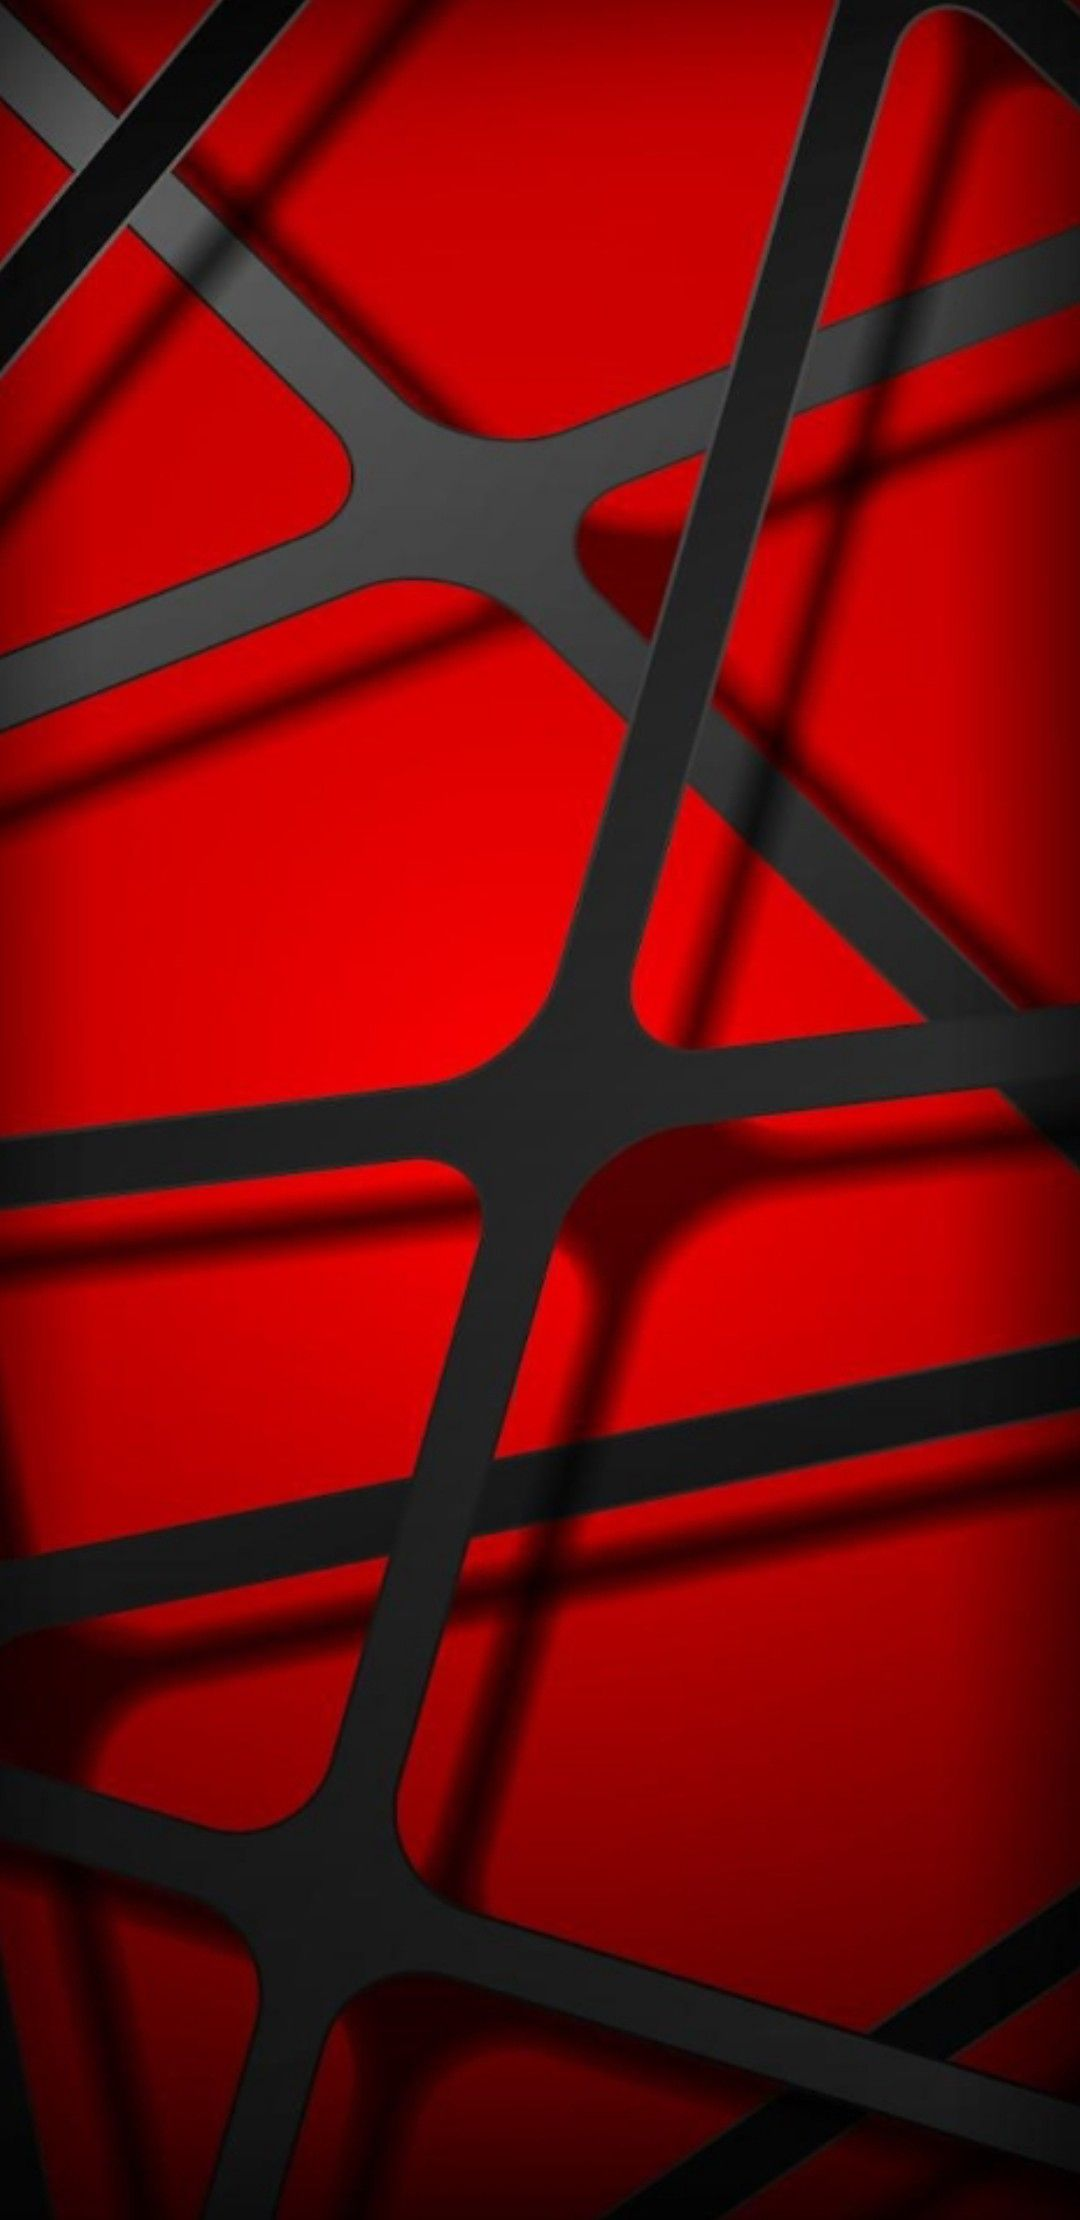 Pin By Nikkladesigns On Red And Black Wallpaper Red And Black Wallpaper Black Wallpaper Wallpaper